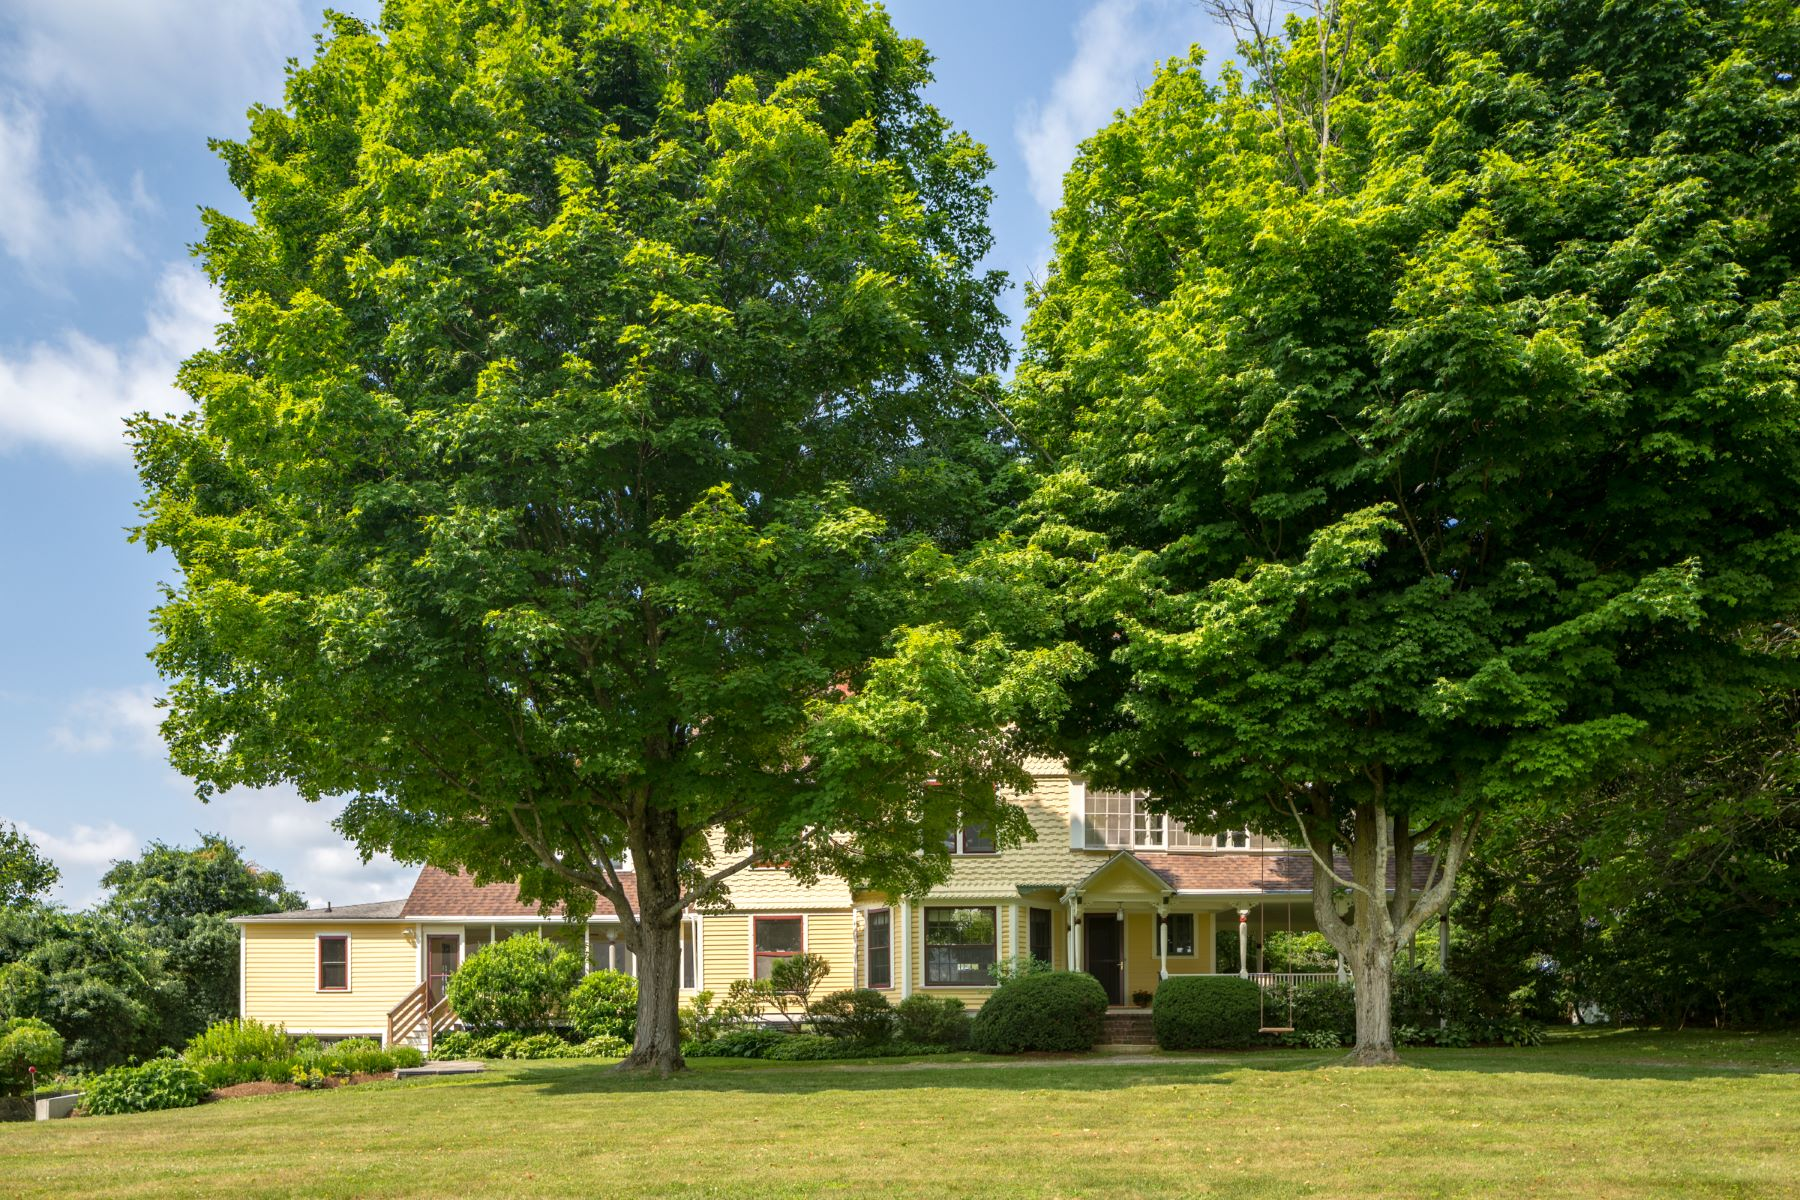 Single Family Home for Active at Extraordinary Country Compound in Sought-after Location 35 & 35a Baldwin Hill East West -- Egremont, Massachusetts 01230 United States